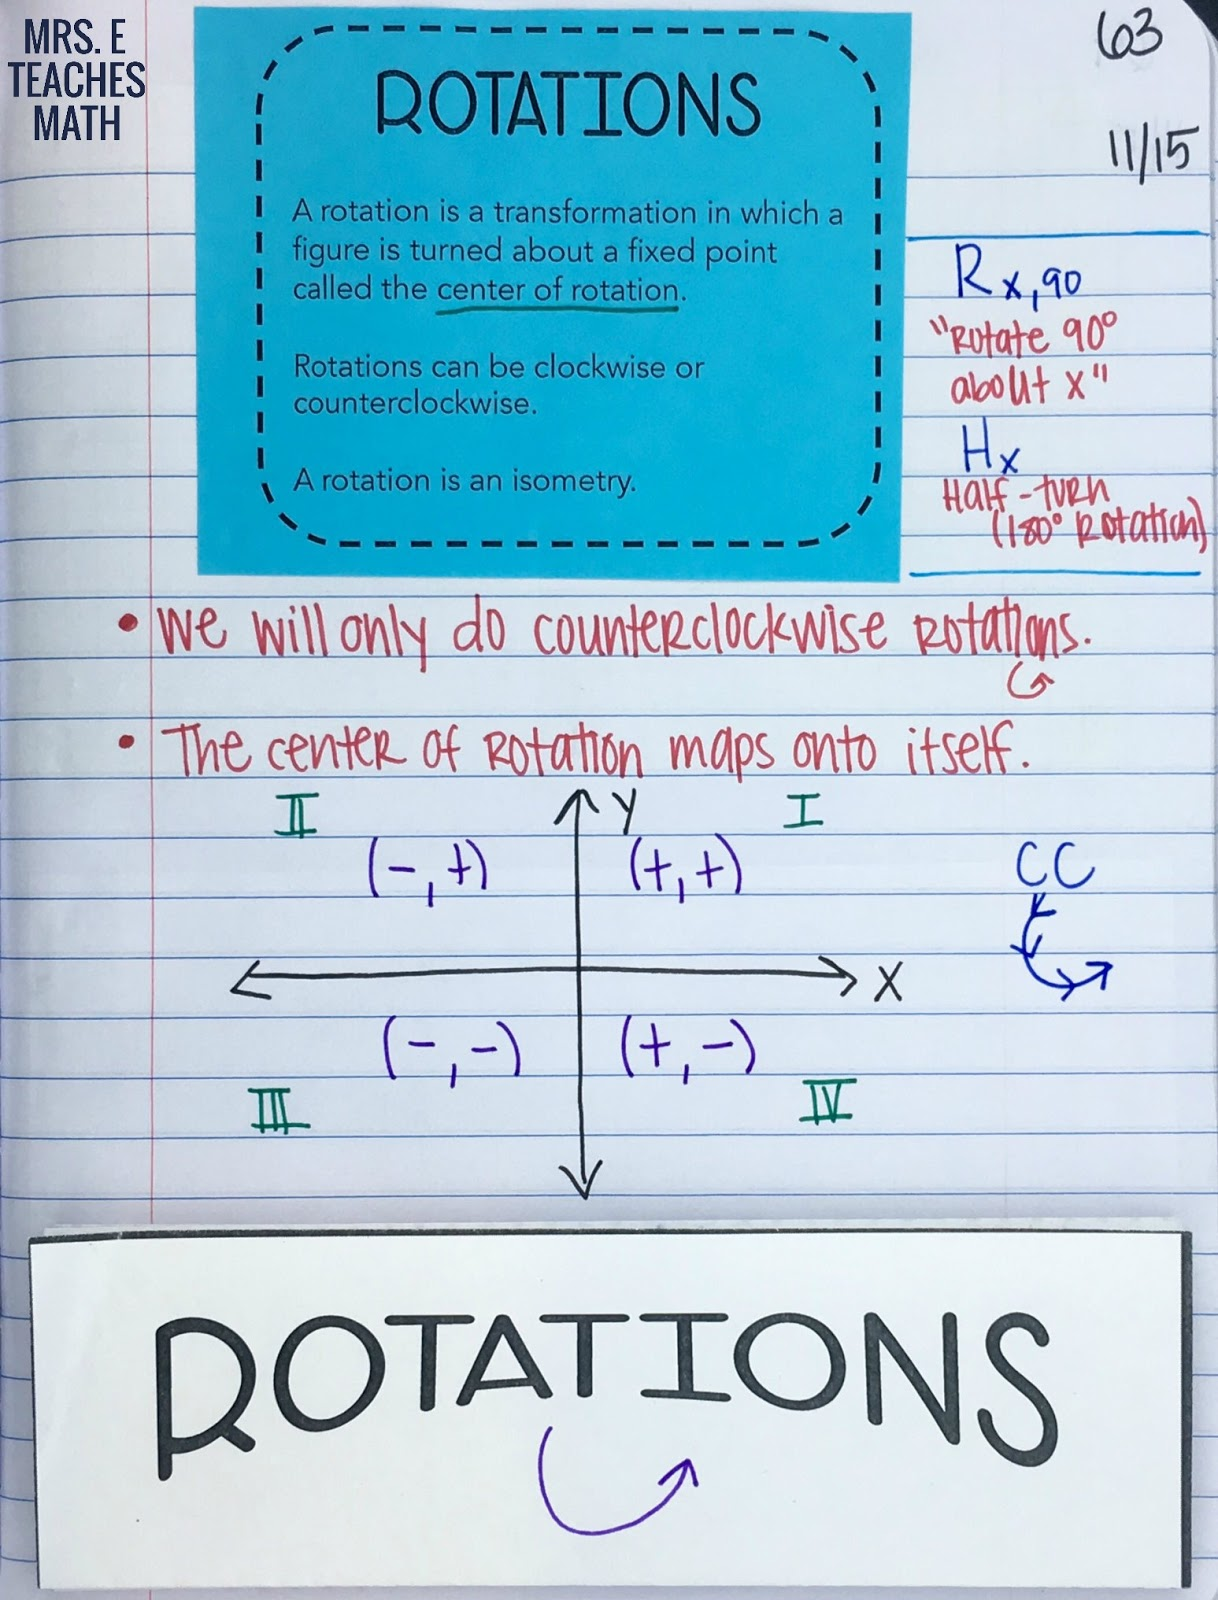 Reflections and Rotations INB Pages | Mrs. E Teaches Math